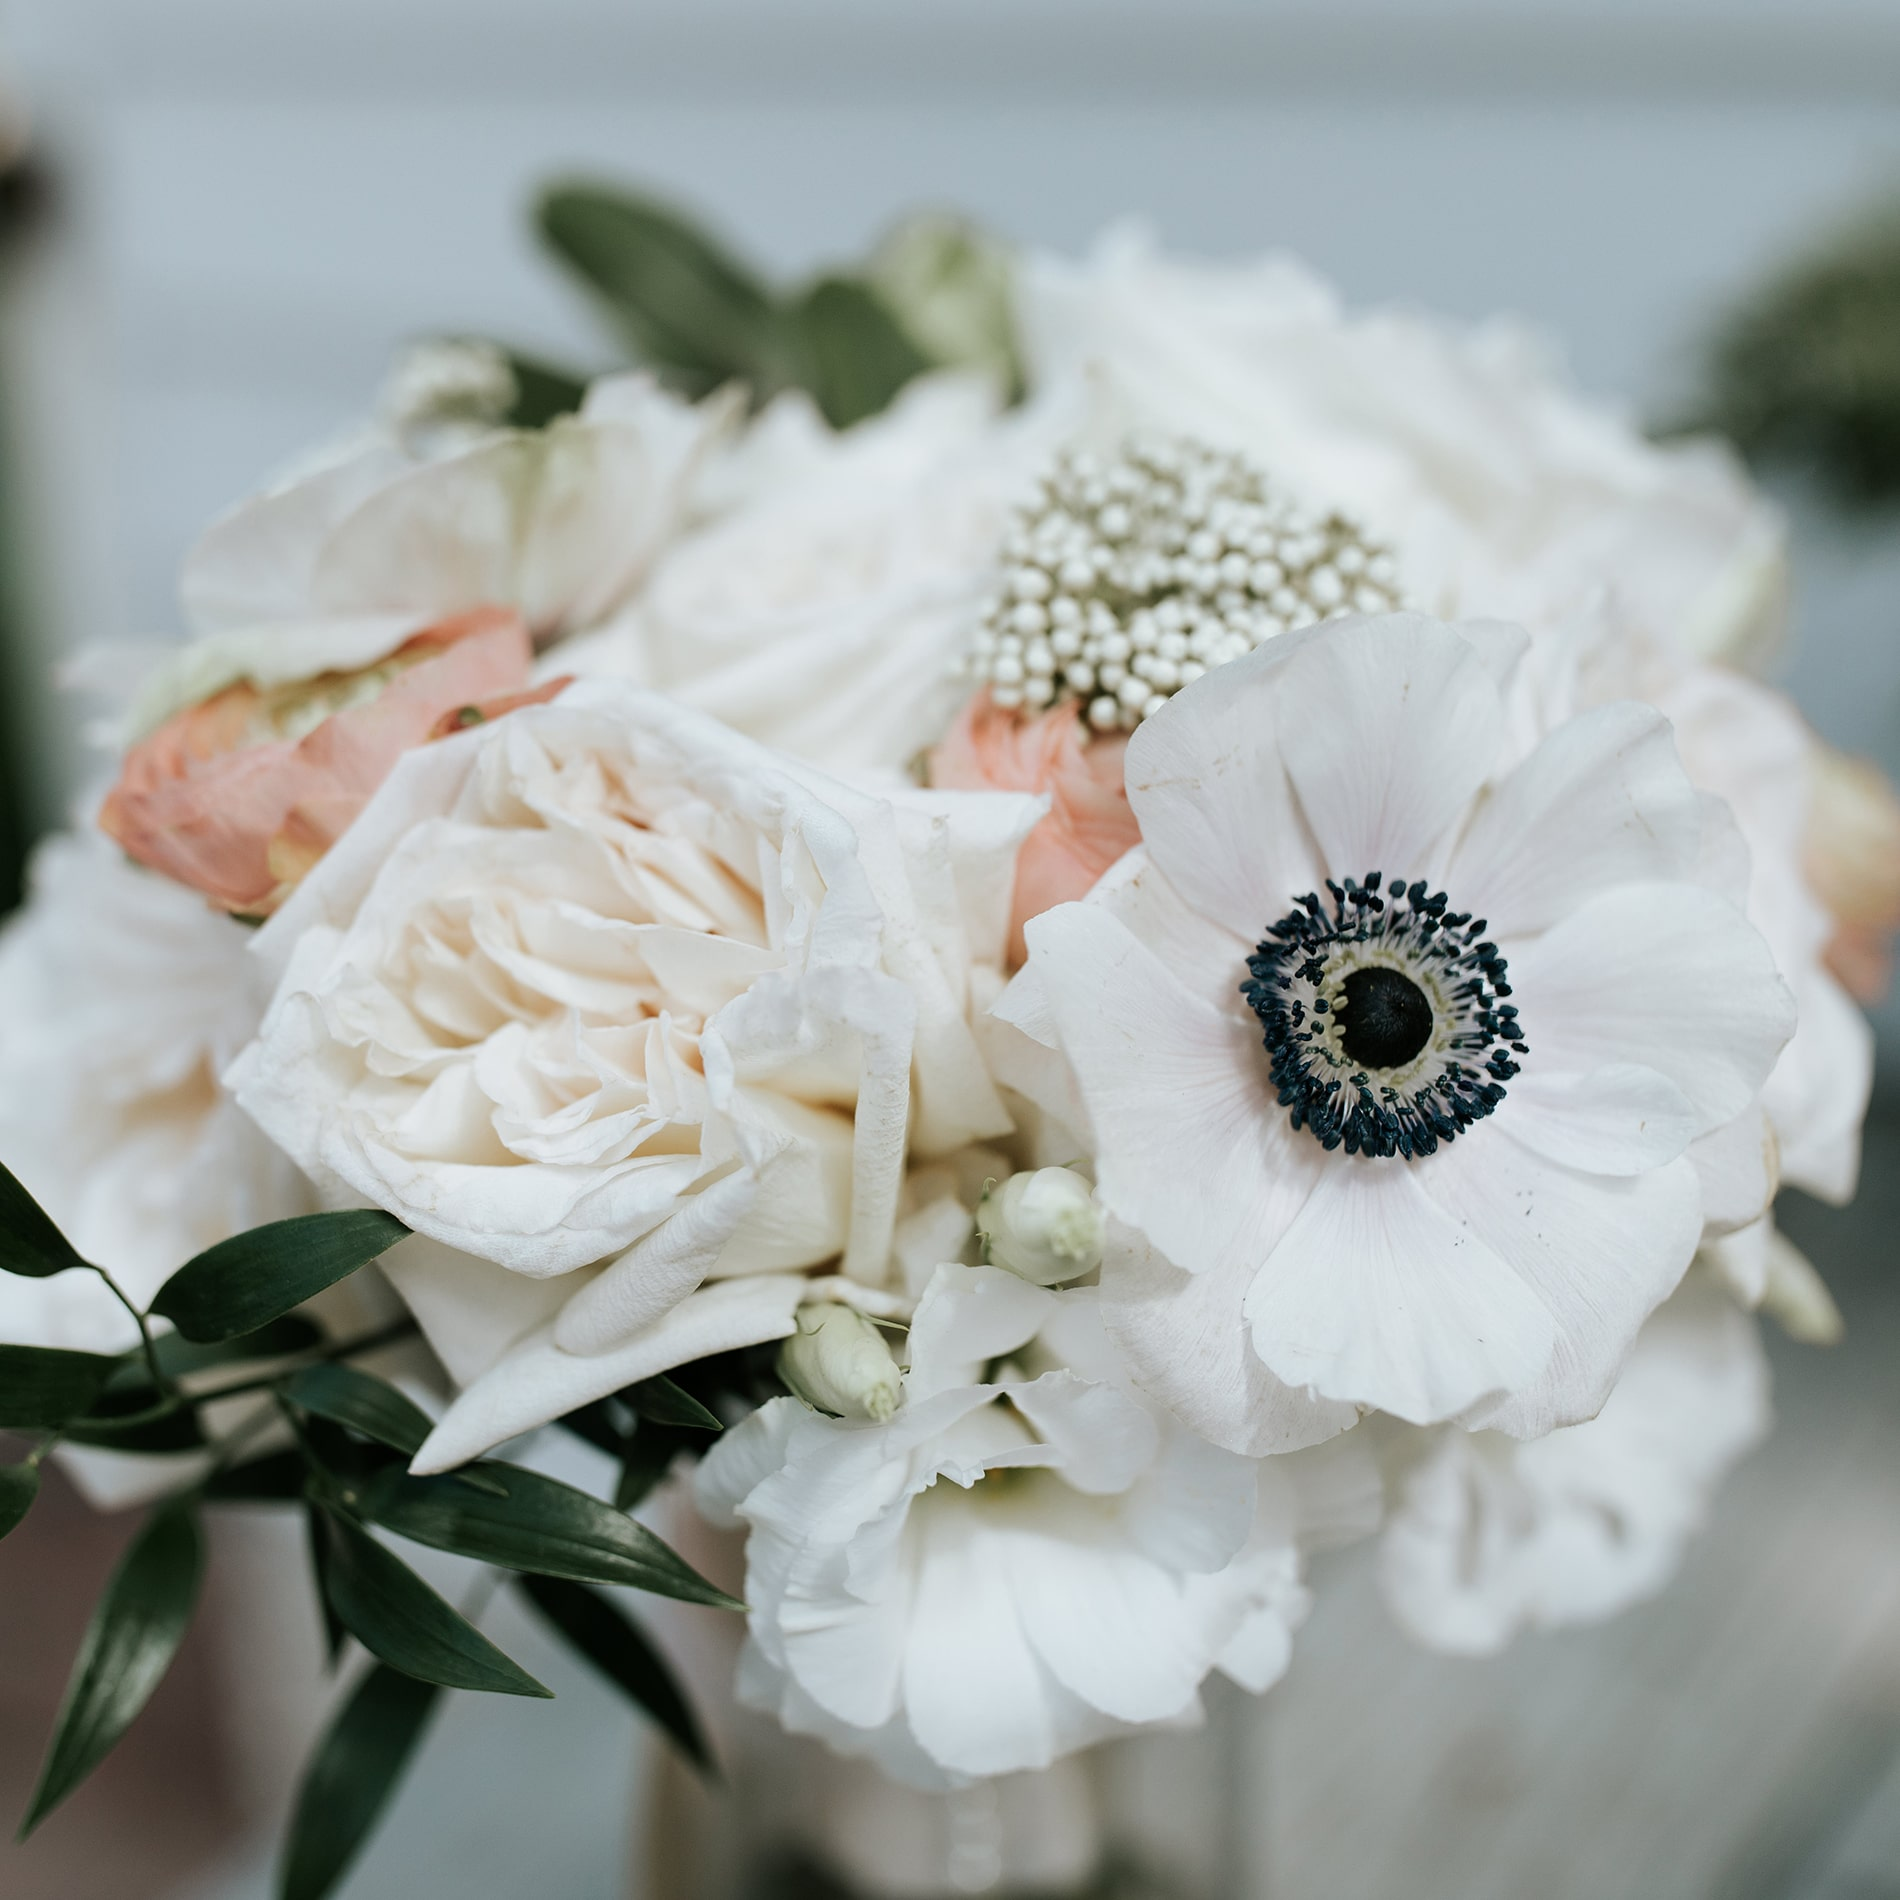 Flowers at the Mary Grace and Judd Kennedy wedding.